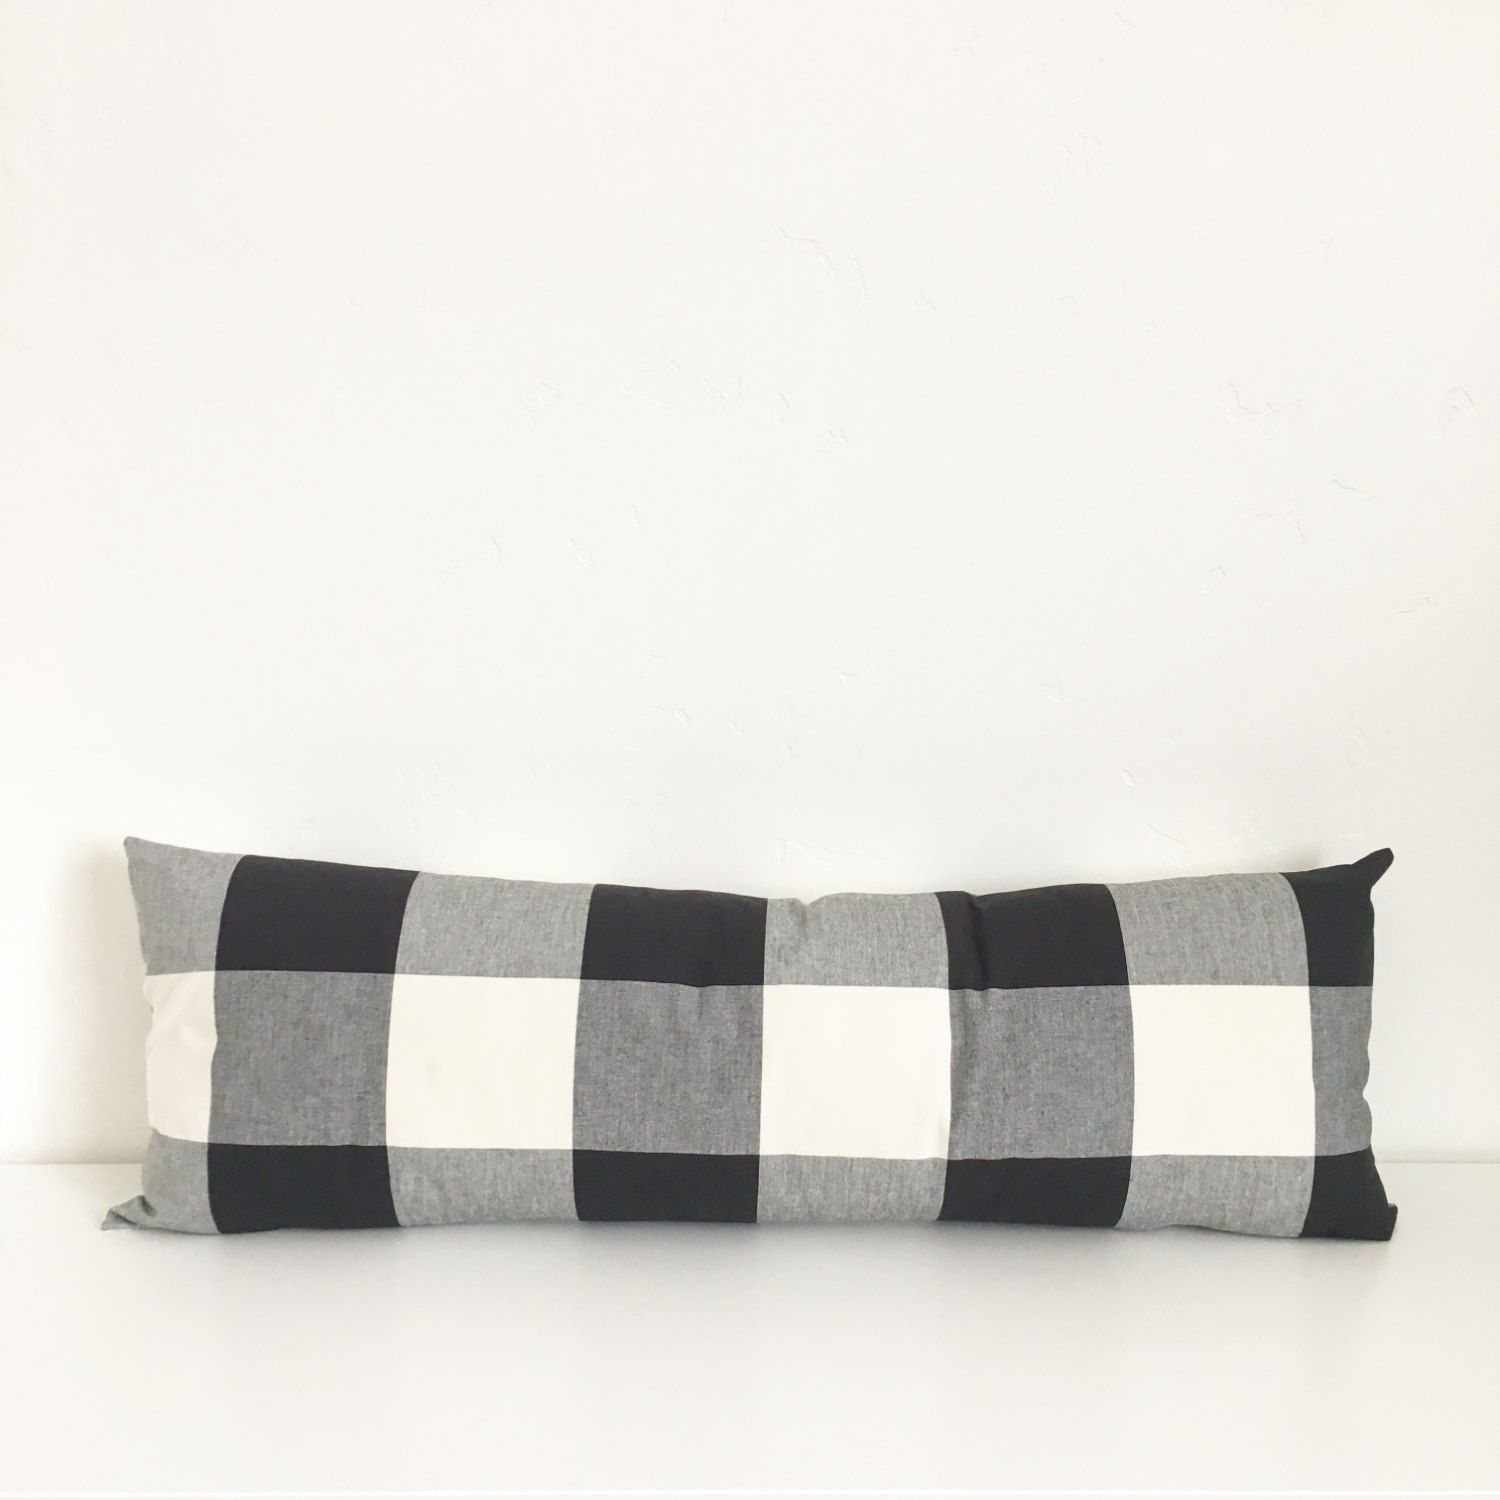 14x36 Lumbar Jet Black And White Buffalo Check Plaid Zipper Pillow Cover By Hivehoneyhome On Etsy Pillows Pillow Covers Black White